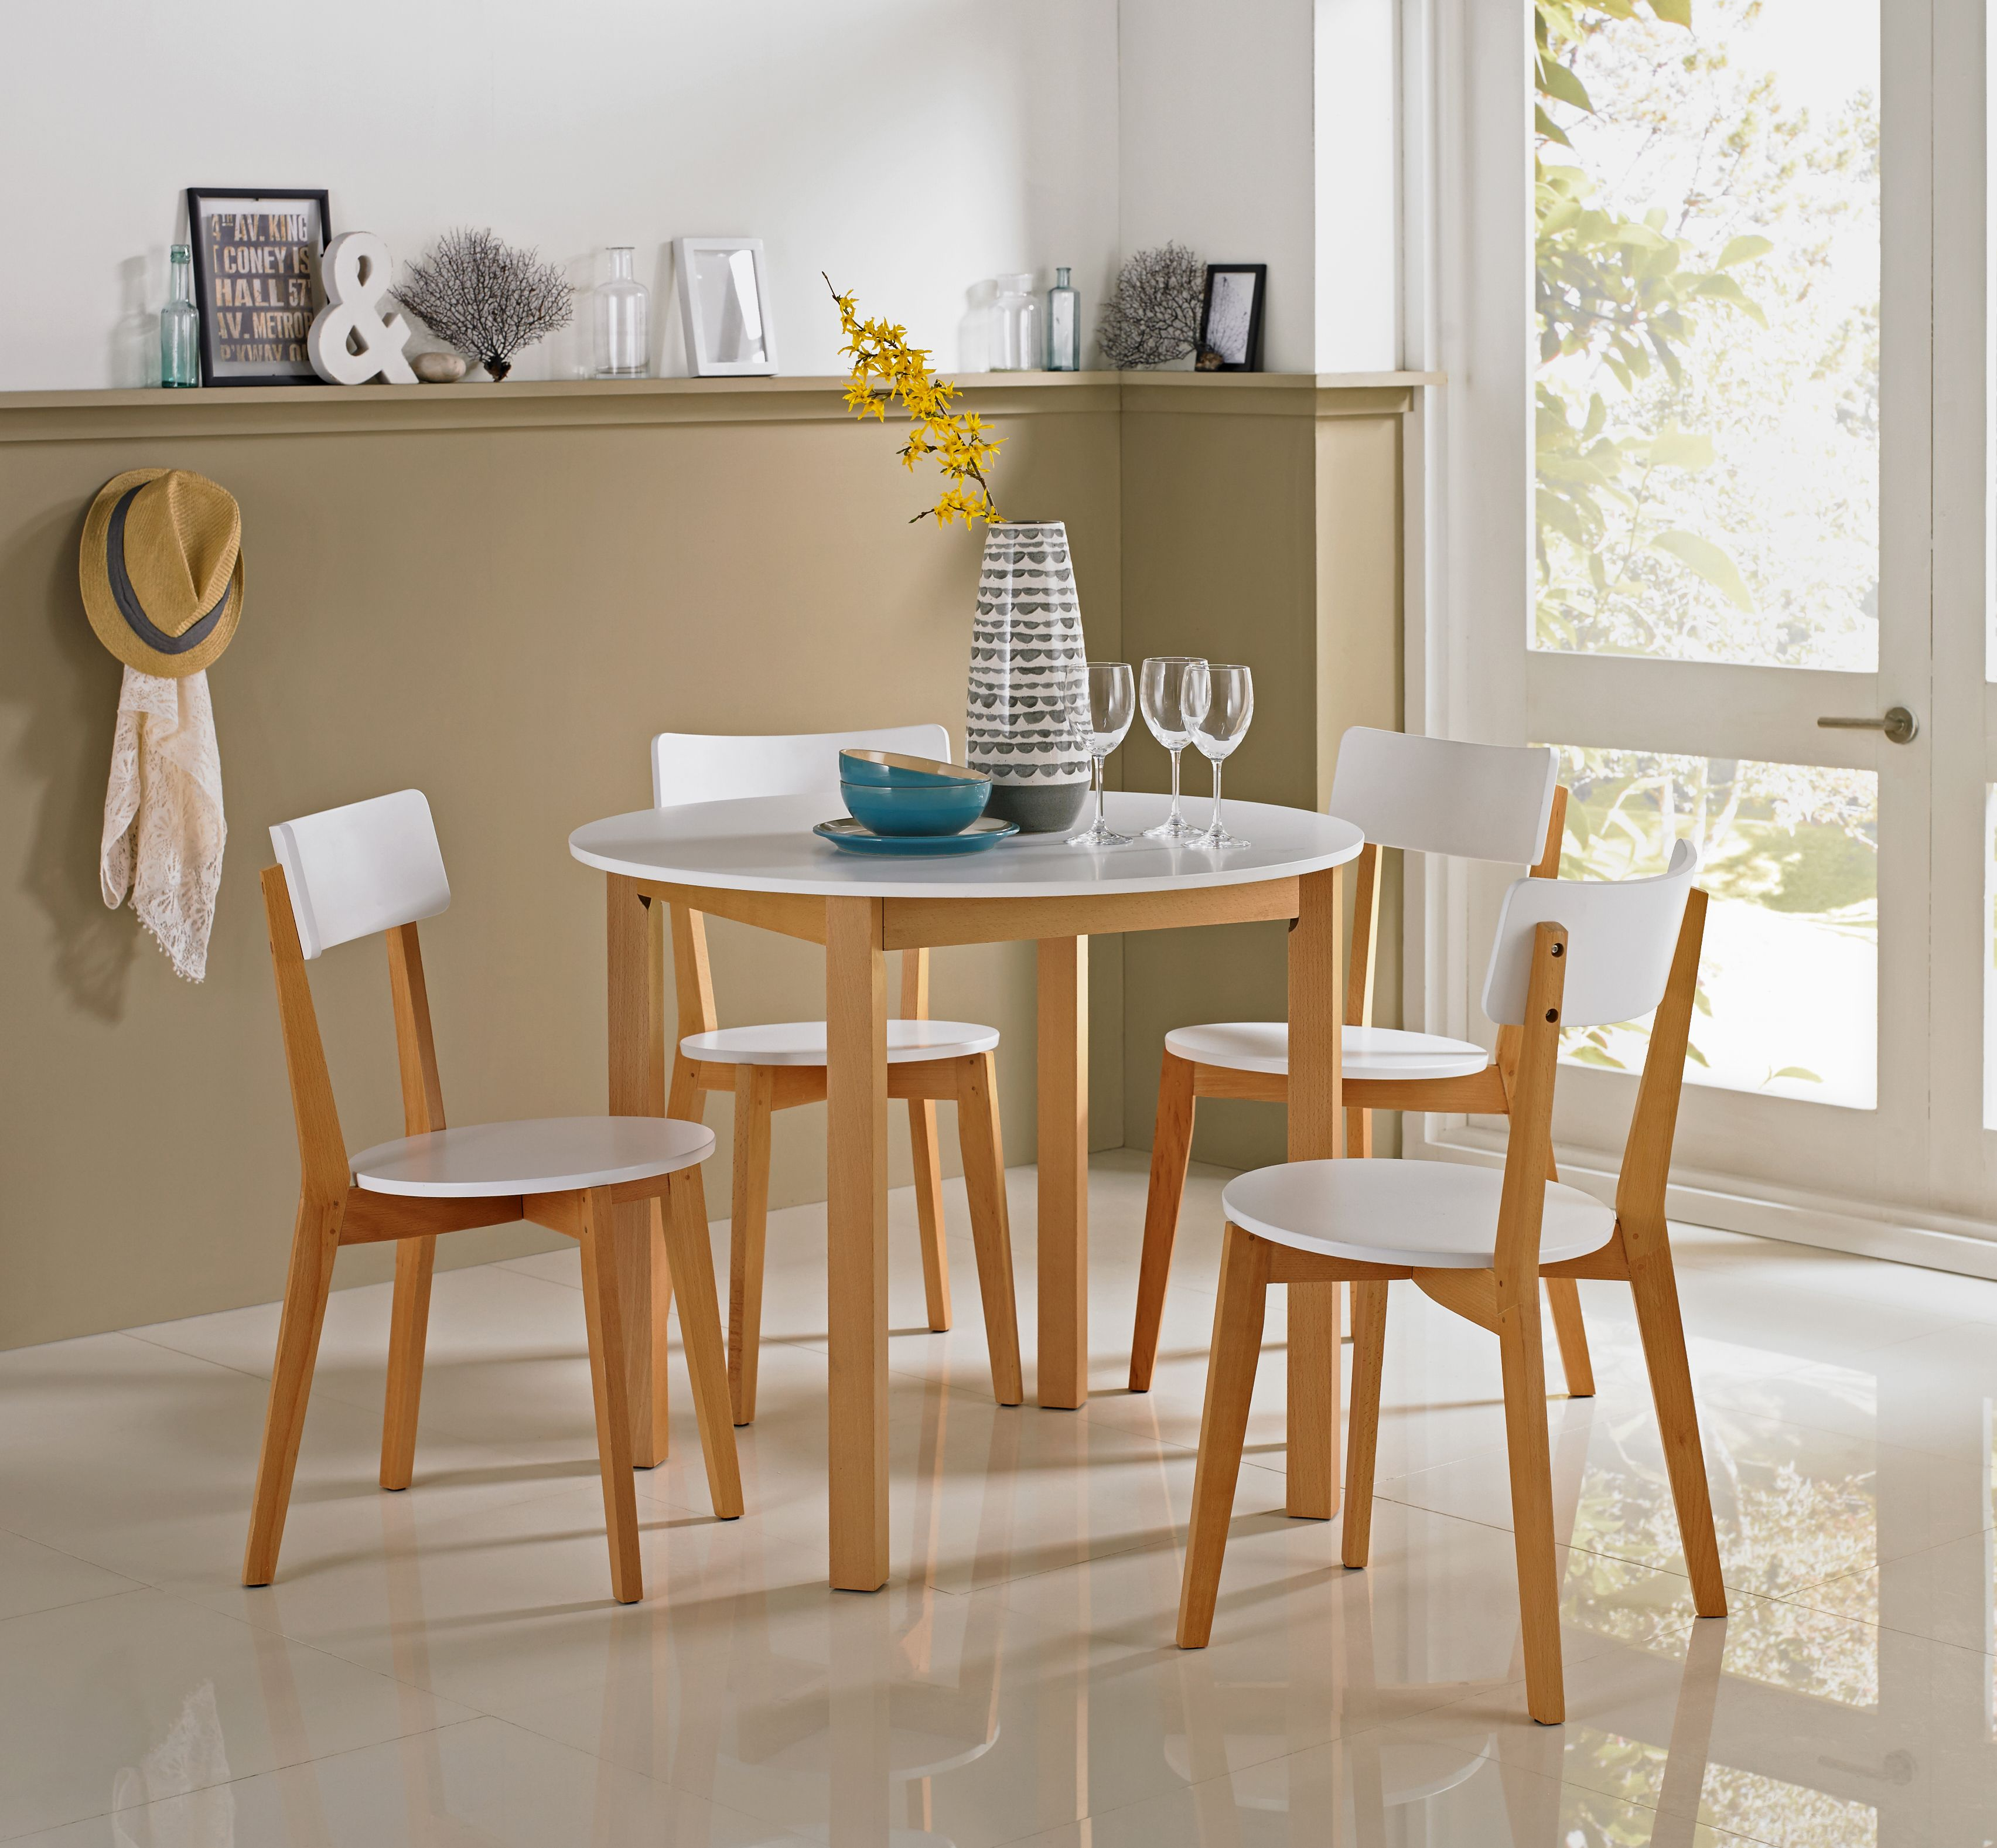 Hygena Rye Kitchen Dining Set in white instantly brings a modern